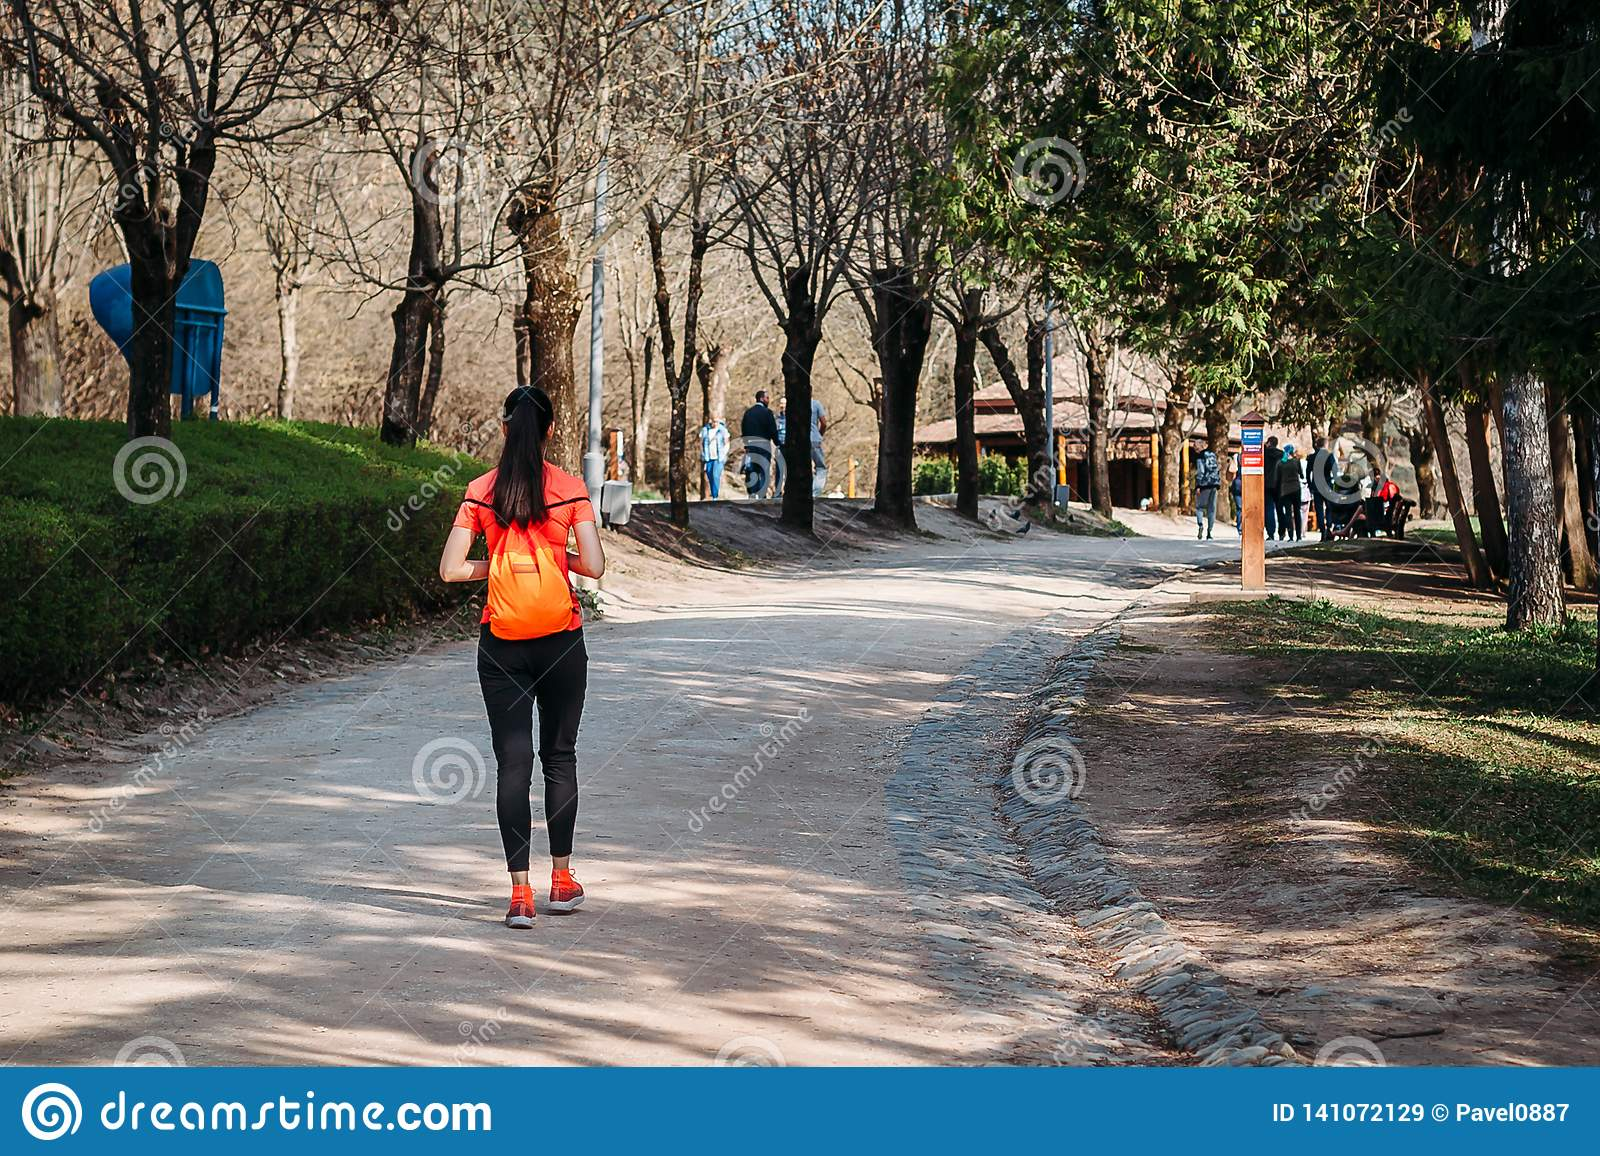 Girl tourist in orange t-shirt walking with backpack in Park on road